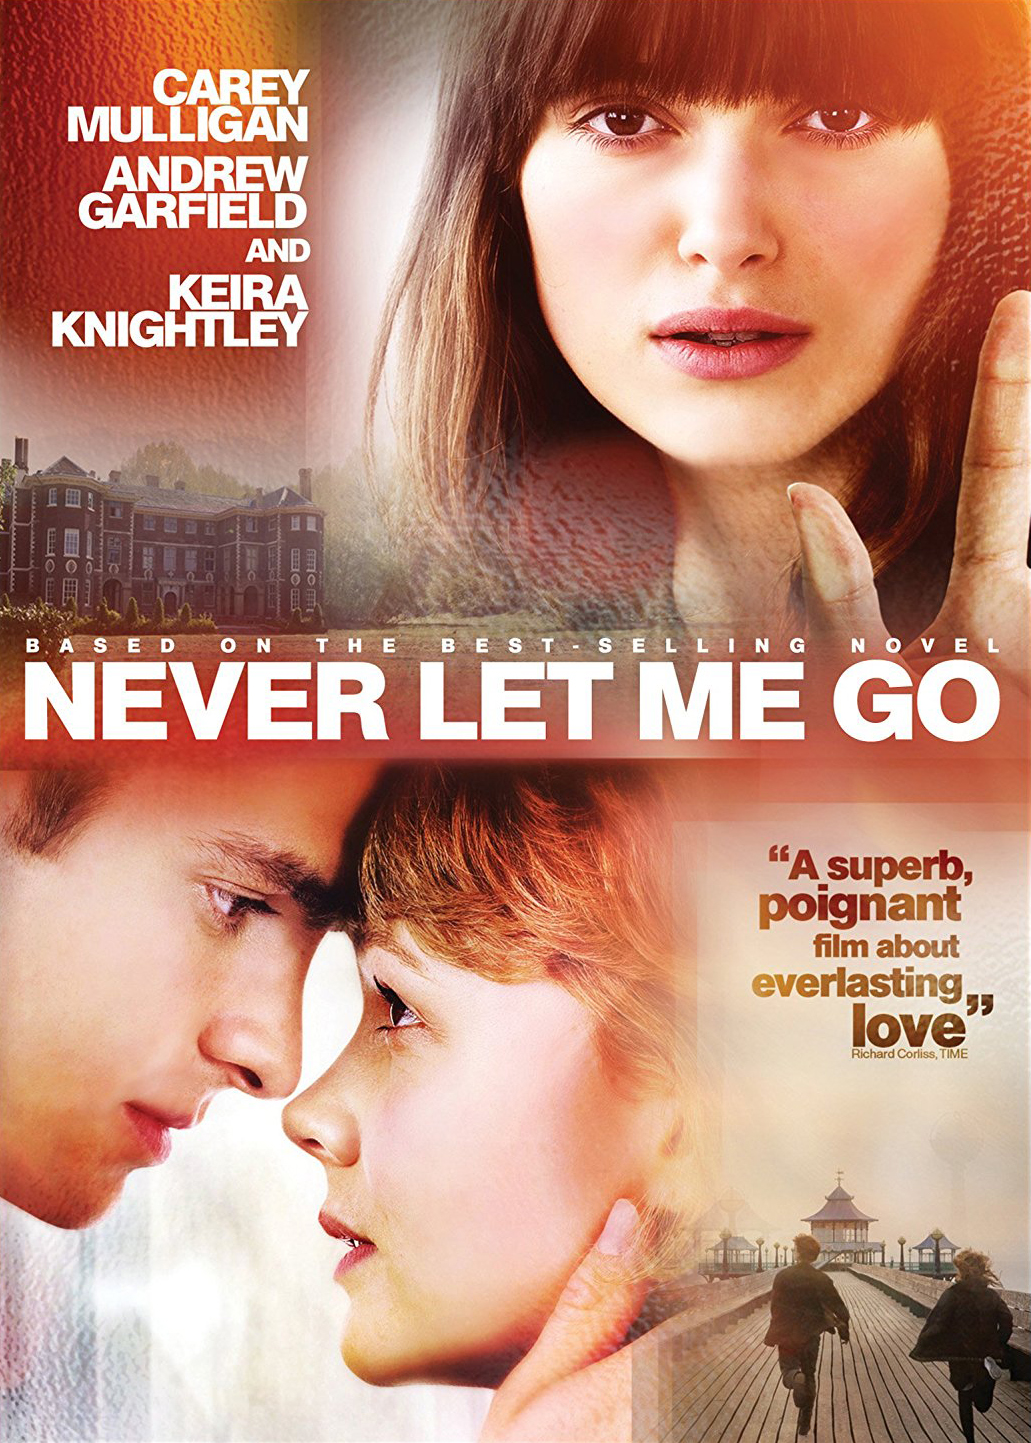 22. Never let me go 愛・別讓我走